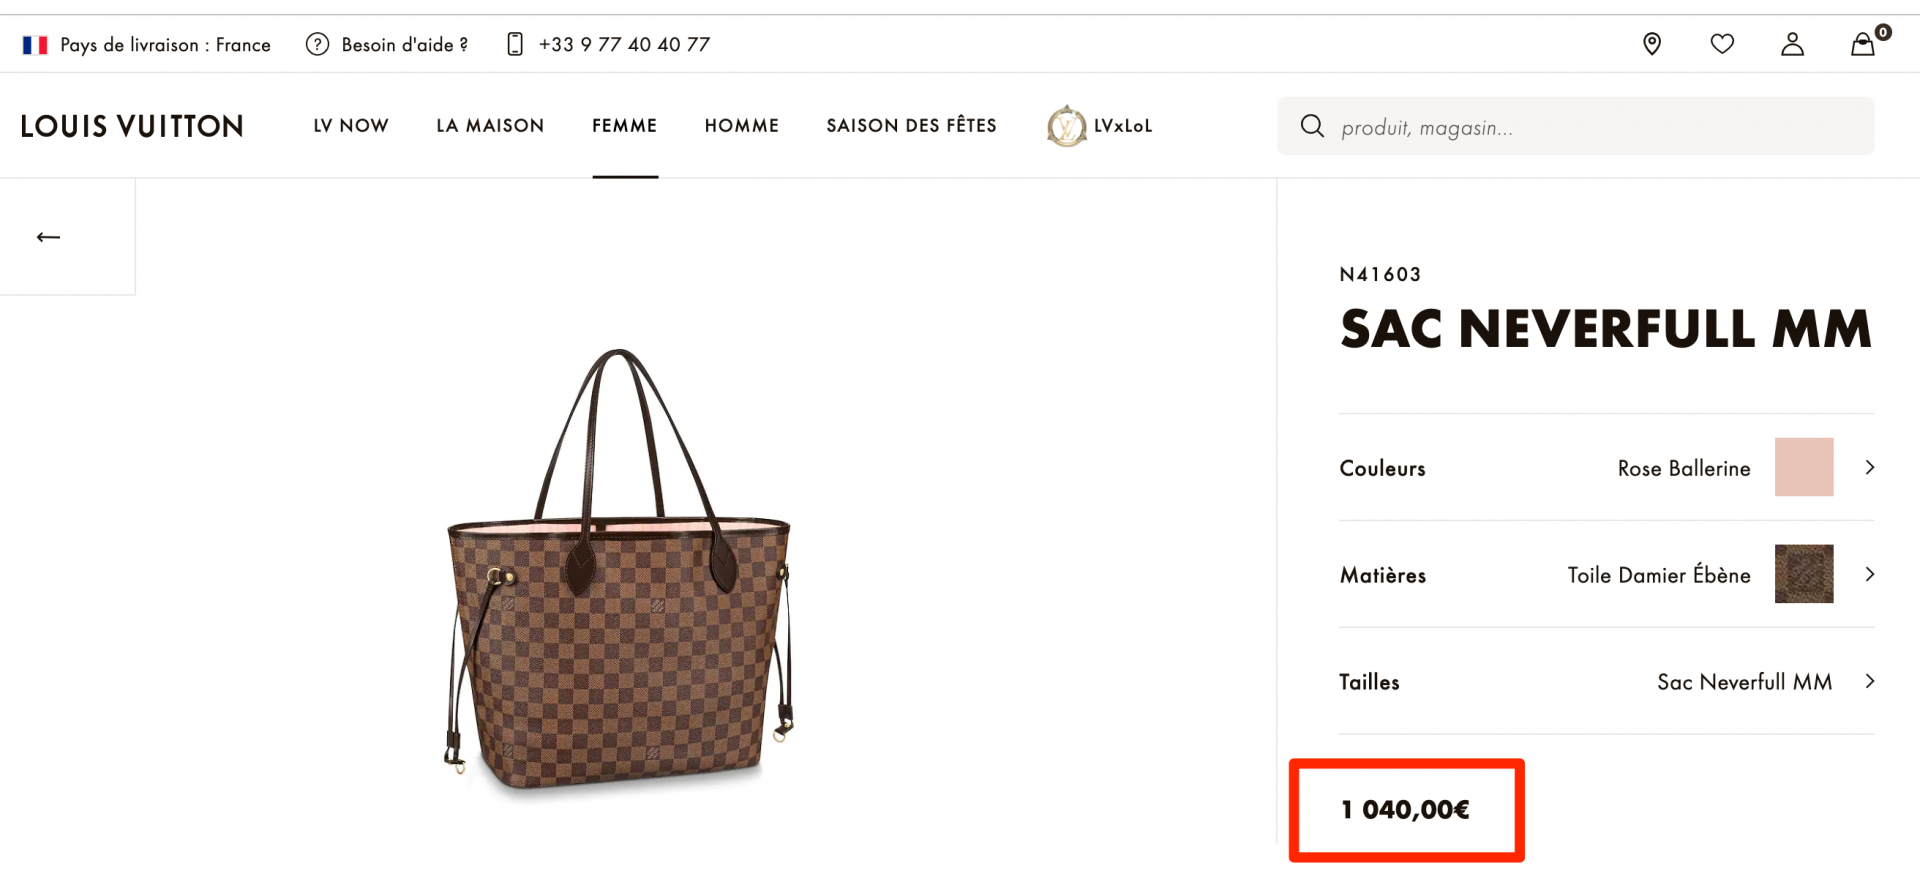 Louis Vuitton pricing in France